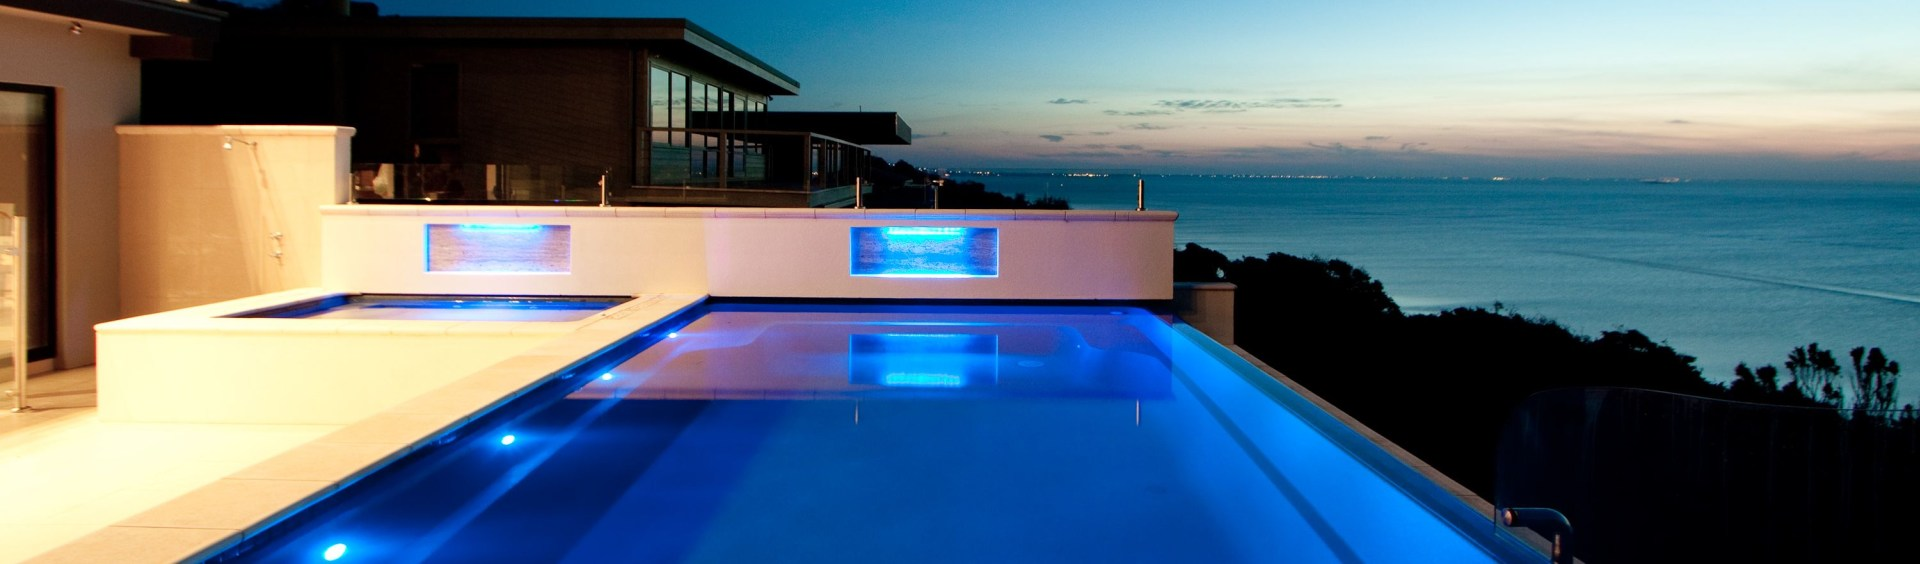 The advantages of installing an infinity pool - Local Pools And Spas